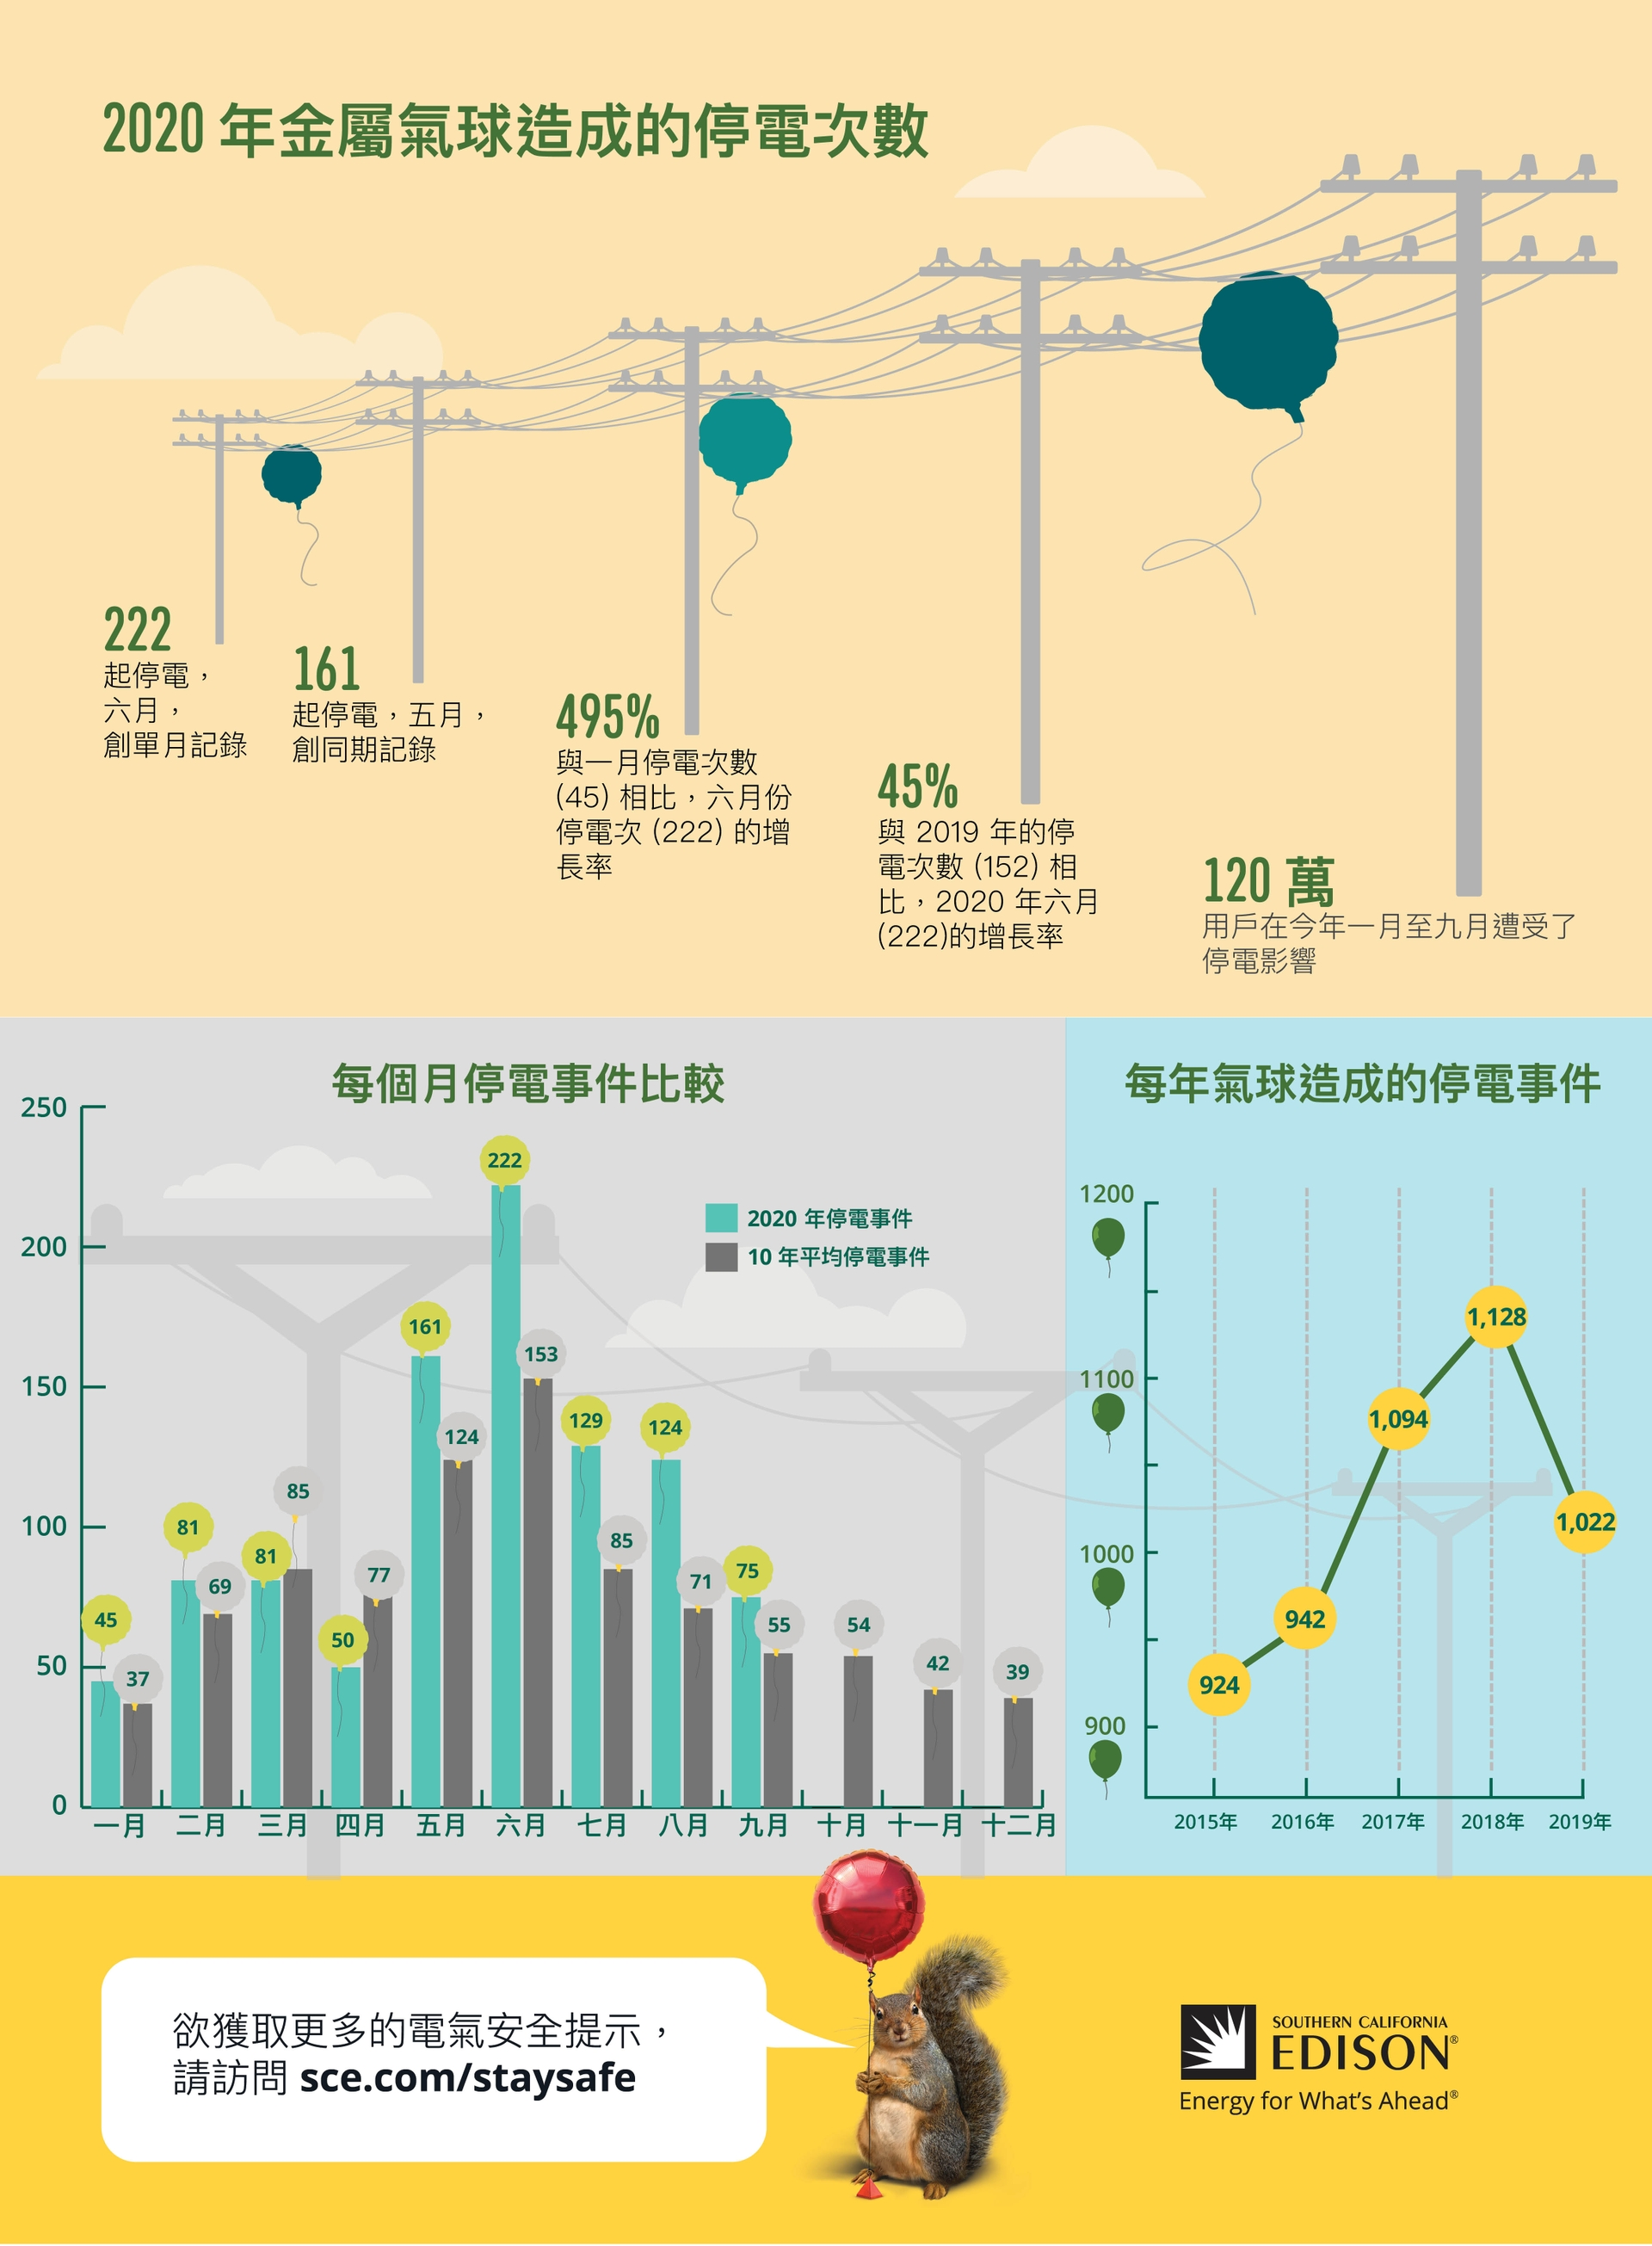 G20-208 Metallic Balloon Infographic_CH